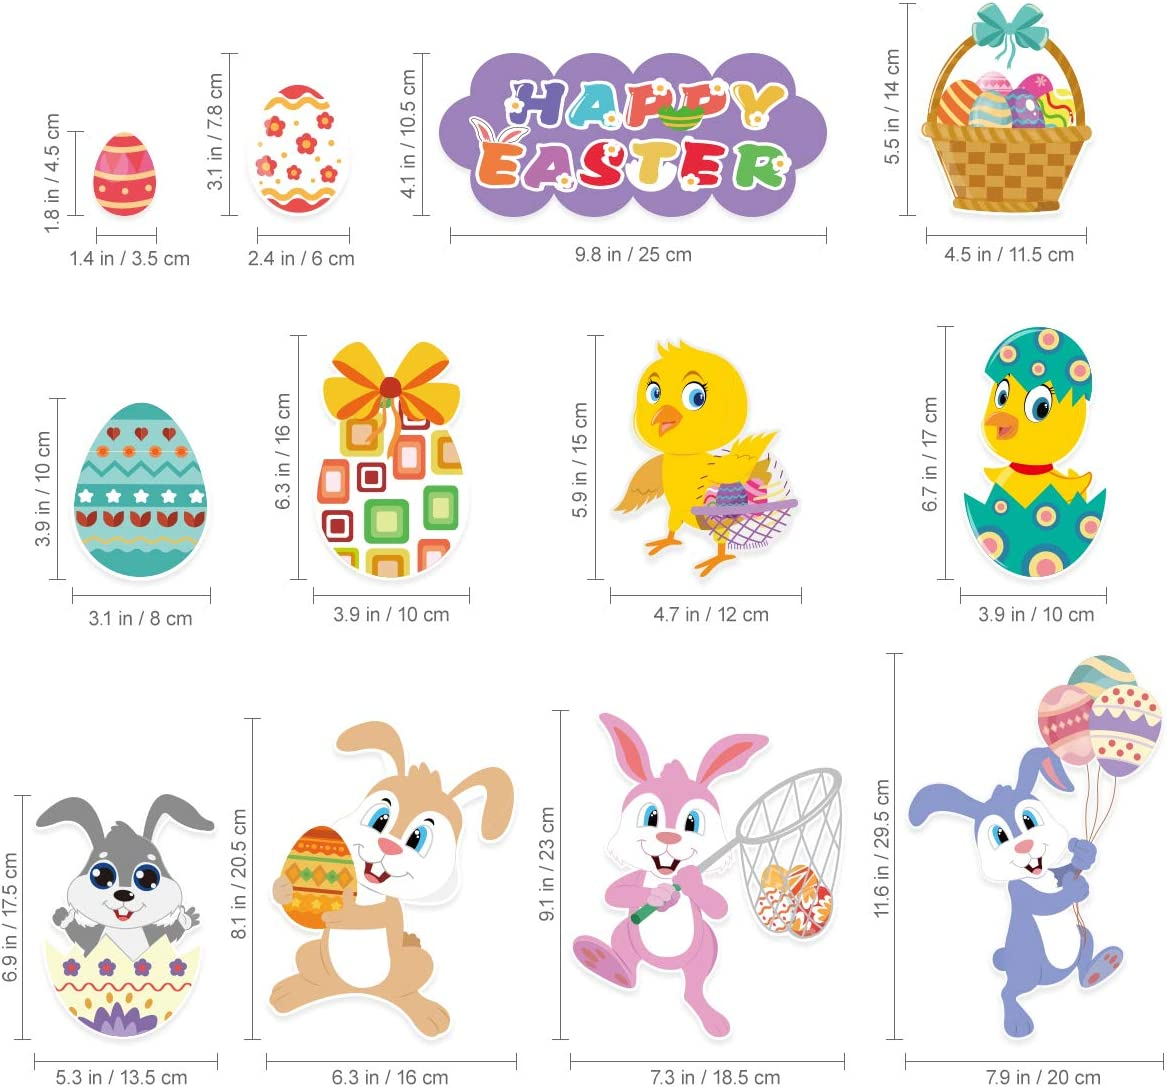 57PCS Easter Bunny Stickers for Party Supplies Home Decorations Removable PVC Stickers 4 Large Sheets Unomor Easter Decorations Window Clings